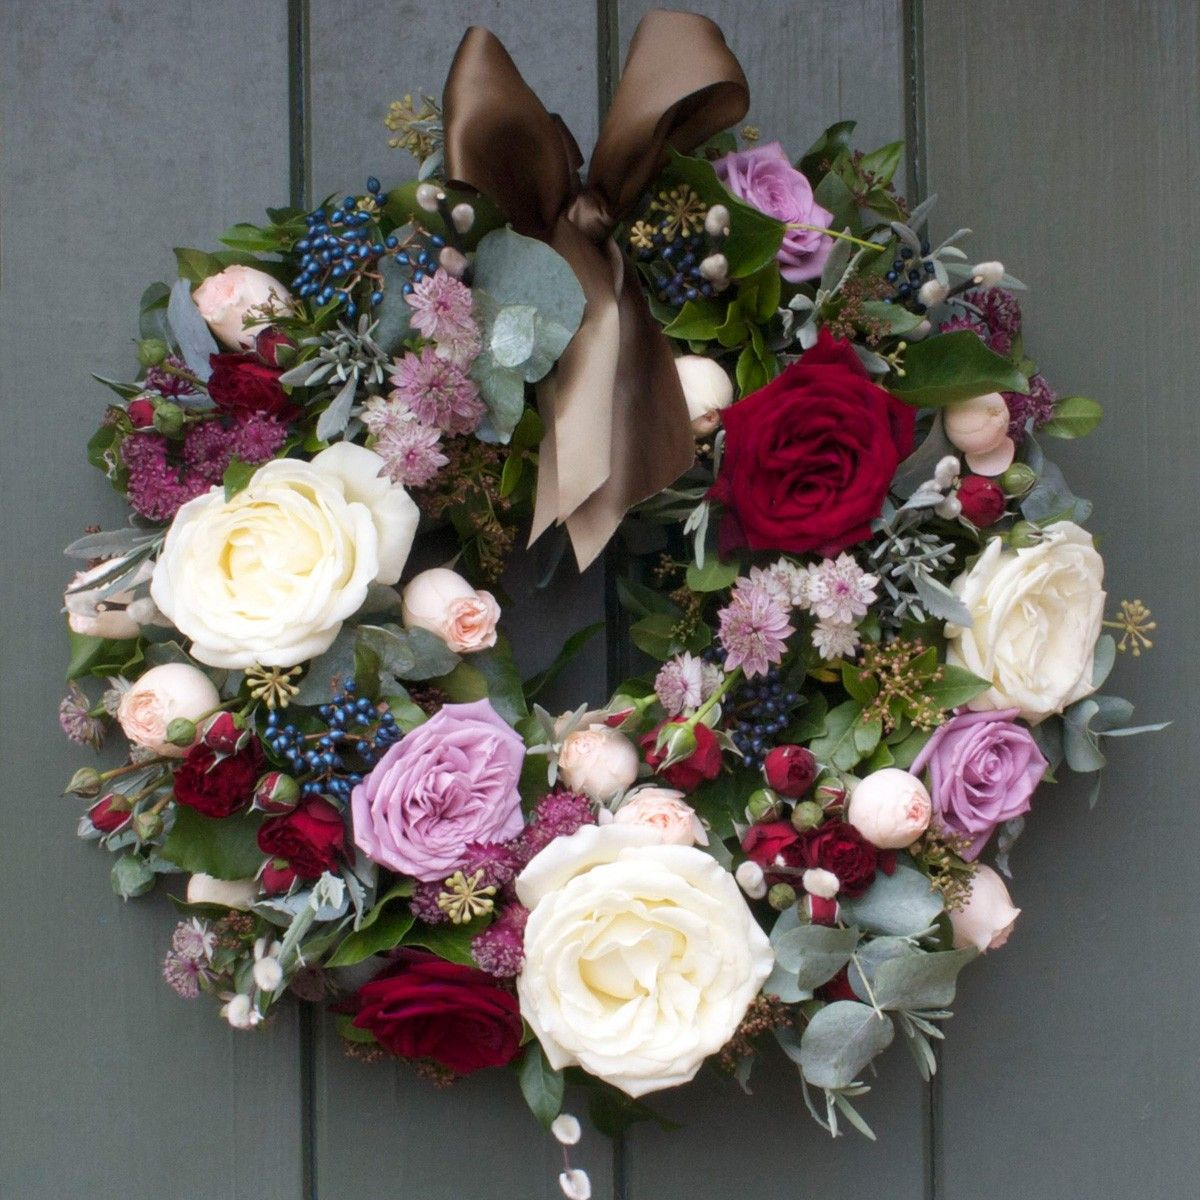 This woodland door wreath has a mixture of luxury scented